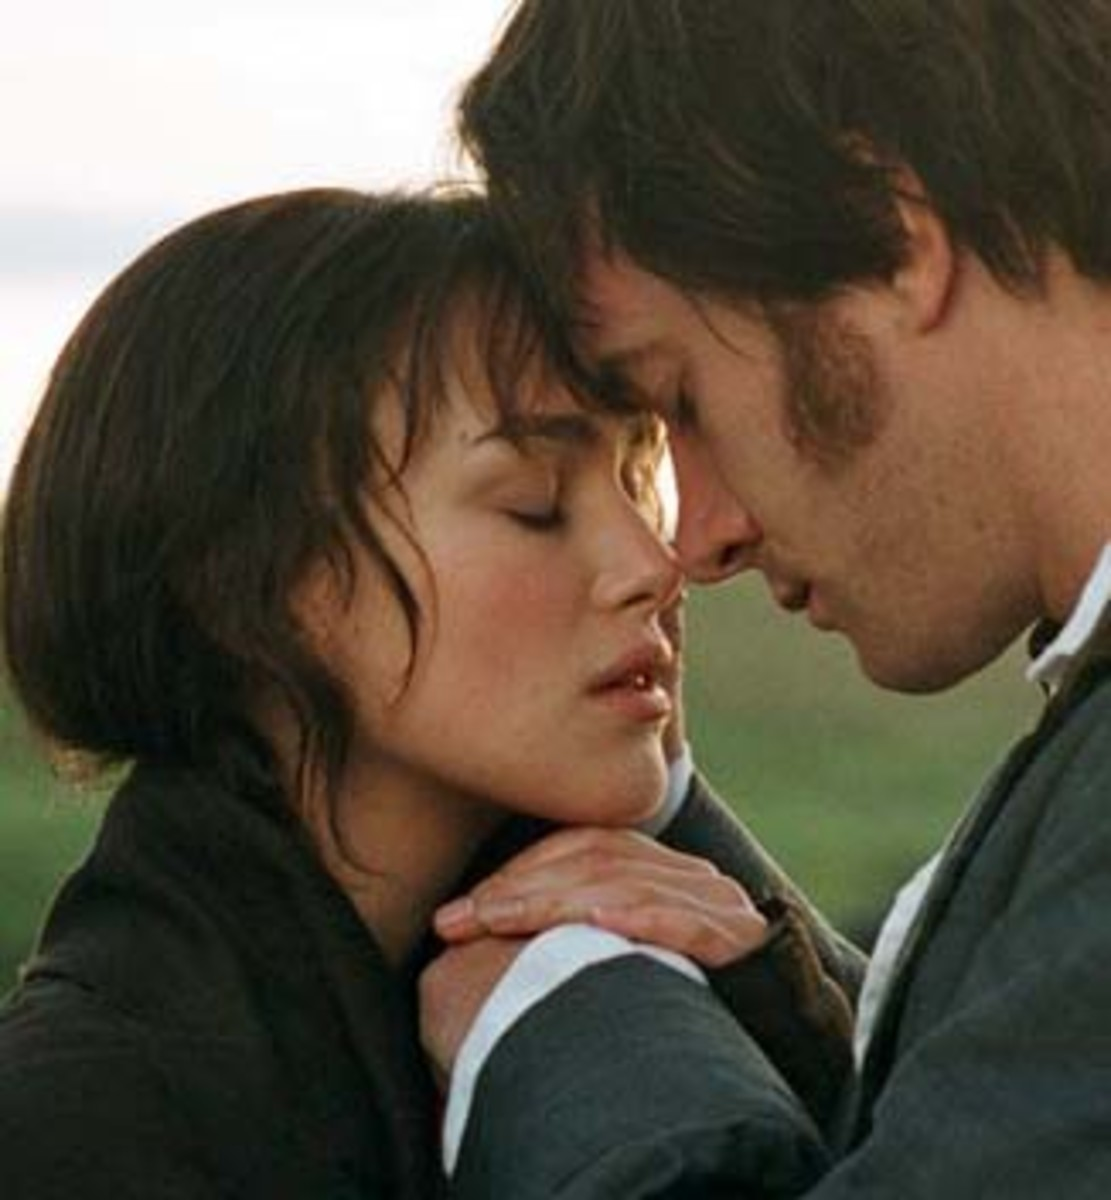 Keira Knightley and Matthew Macfadyen in Pride & Prejudice